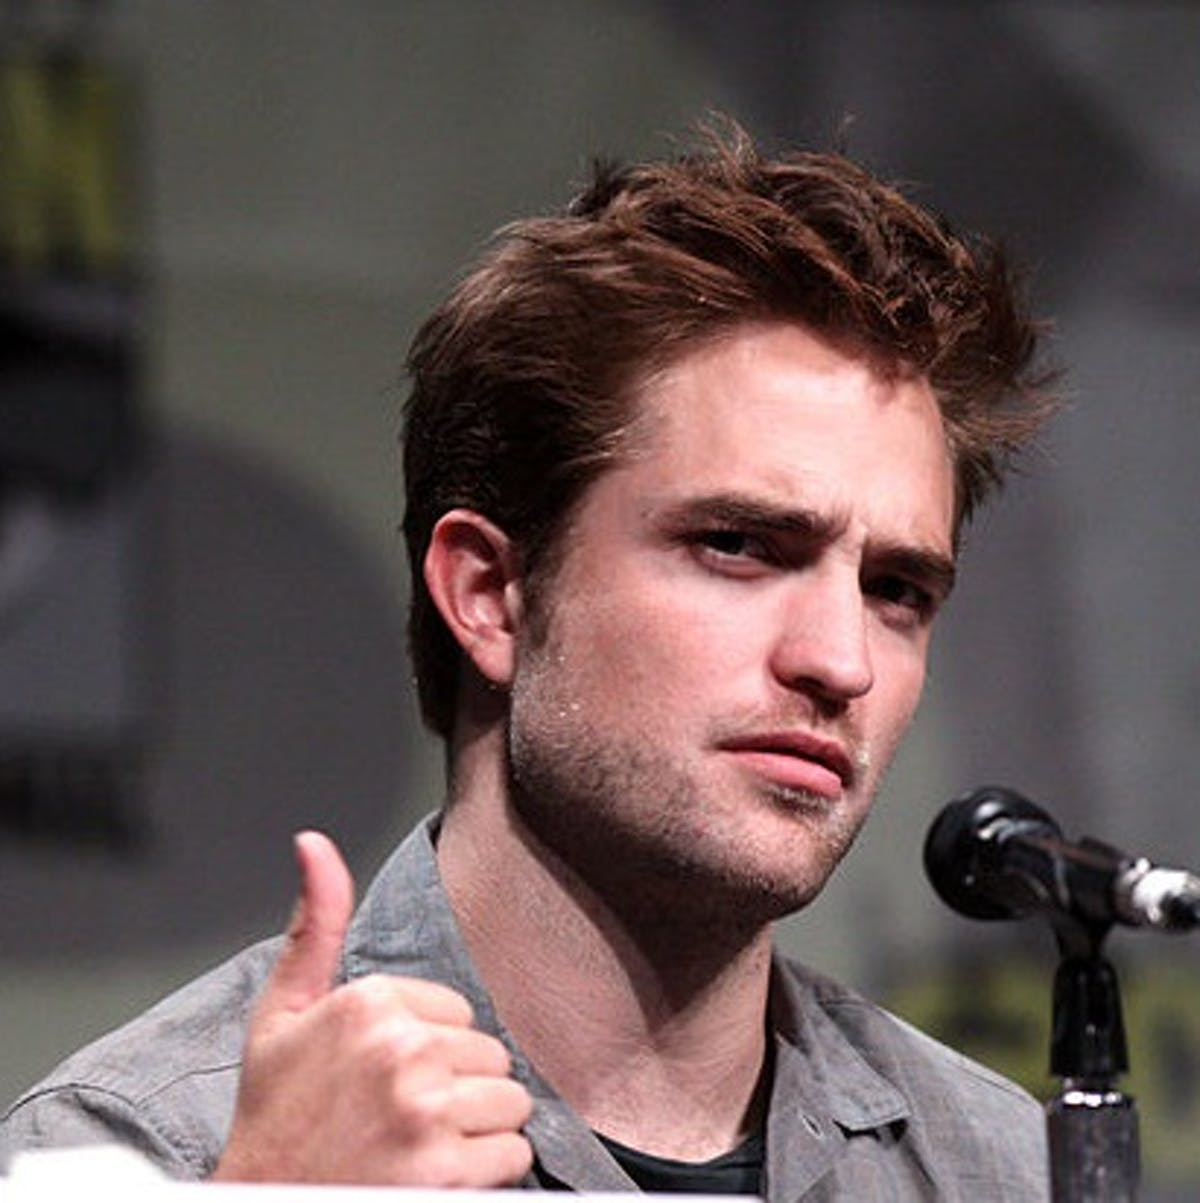 Robert Pattinson's Batman training may reveal massive change to the Batsuit